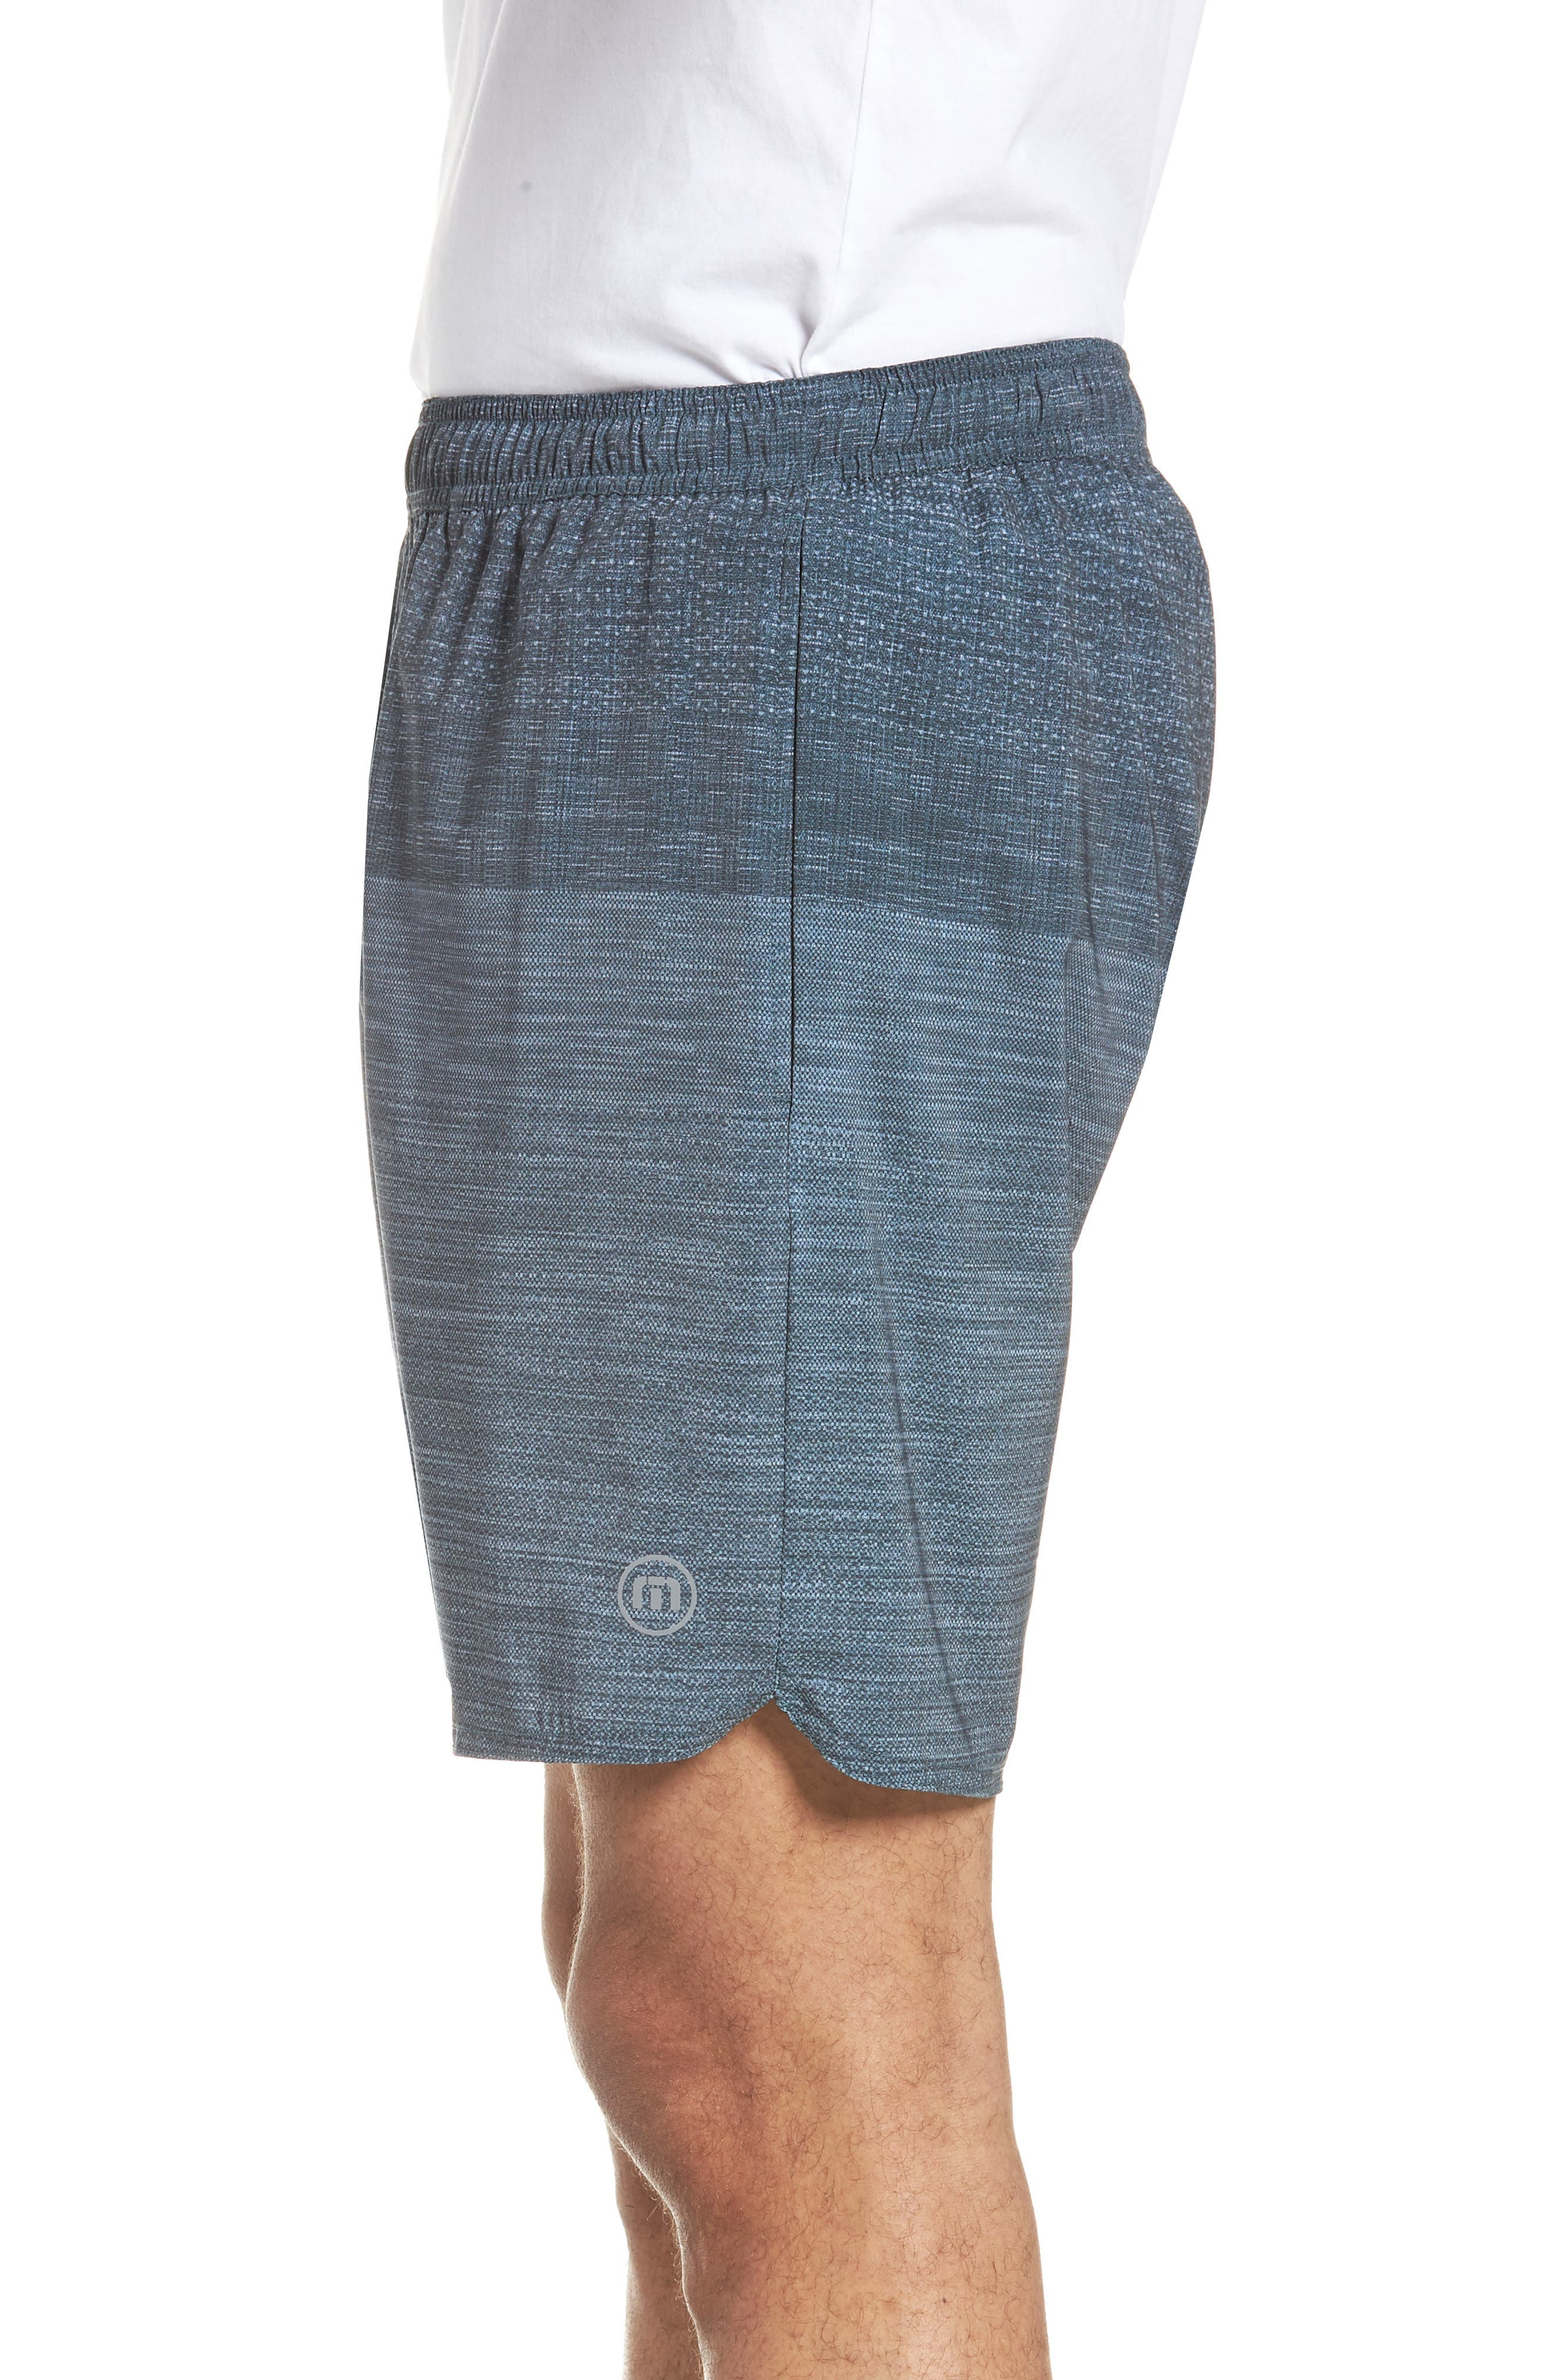 Tempo Performance Shorts,                             Alternate thumbnail 3, color,                             HEATHER QUIET SHADE